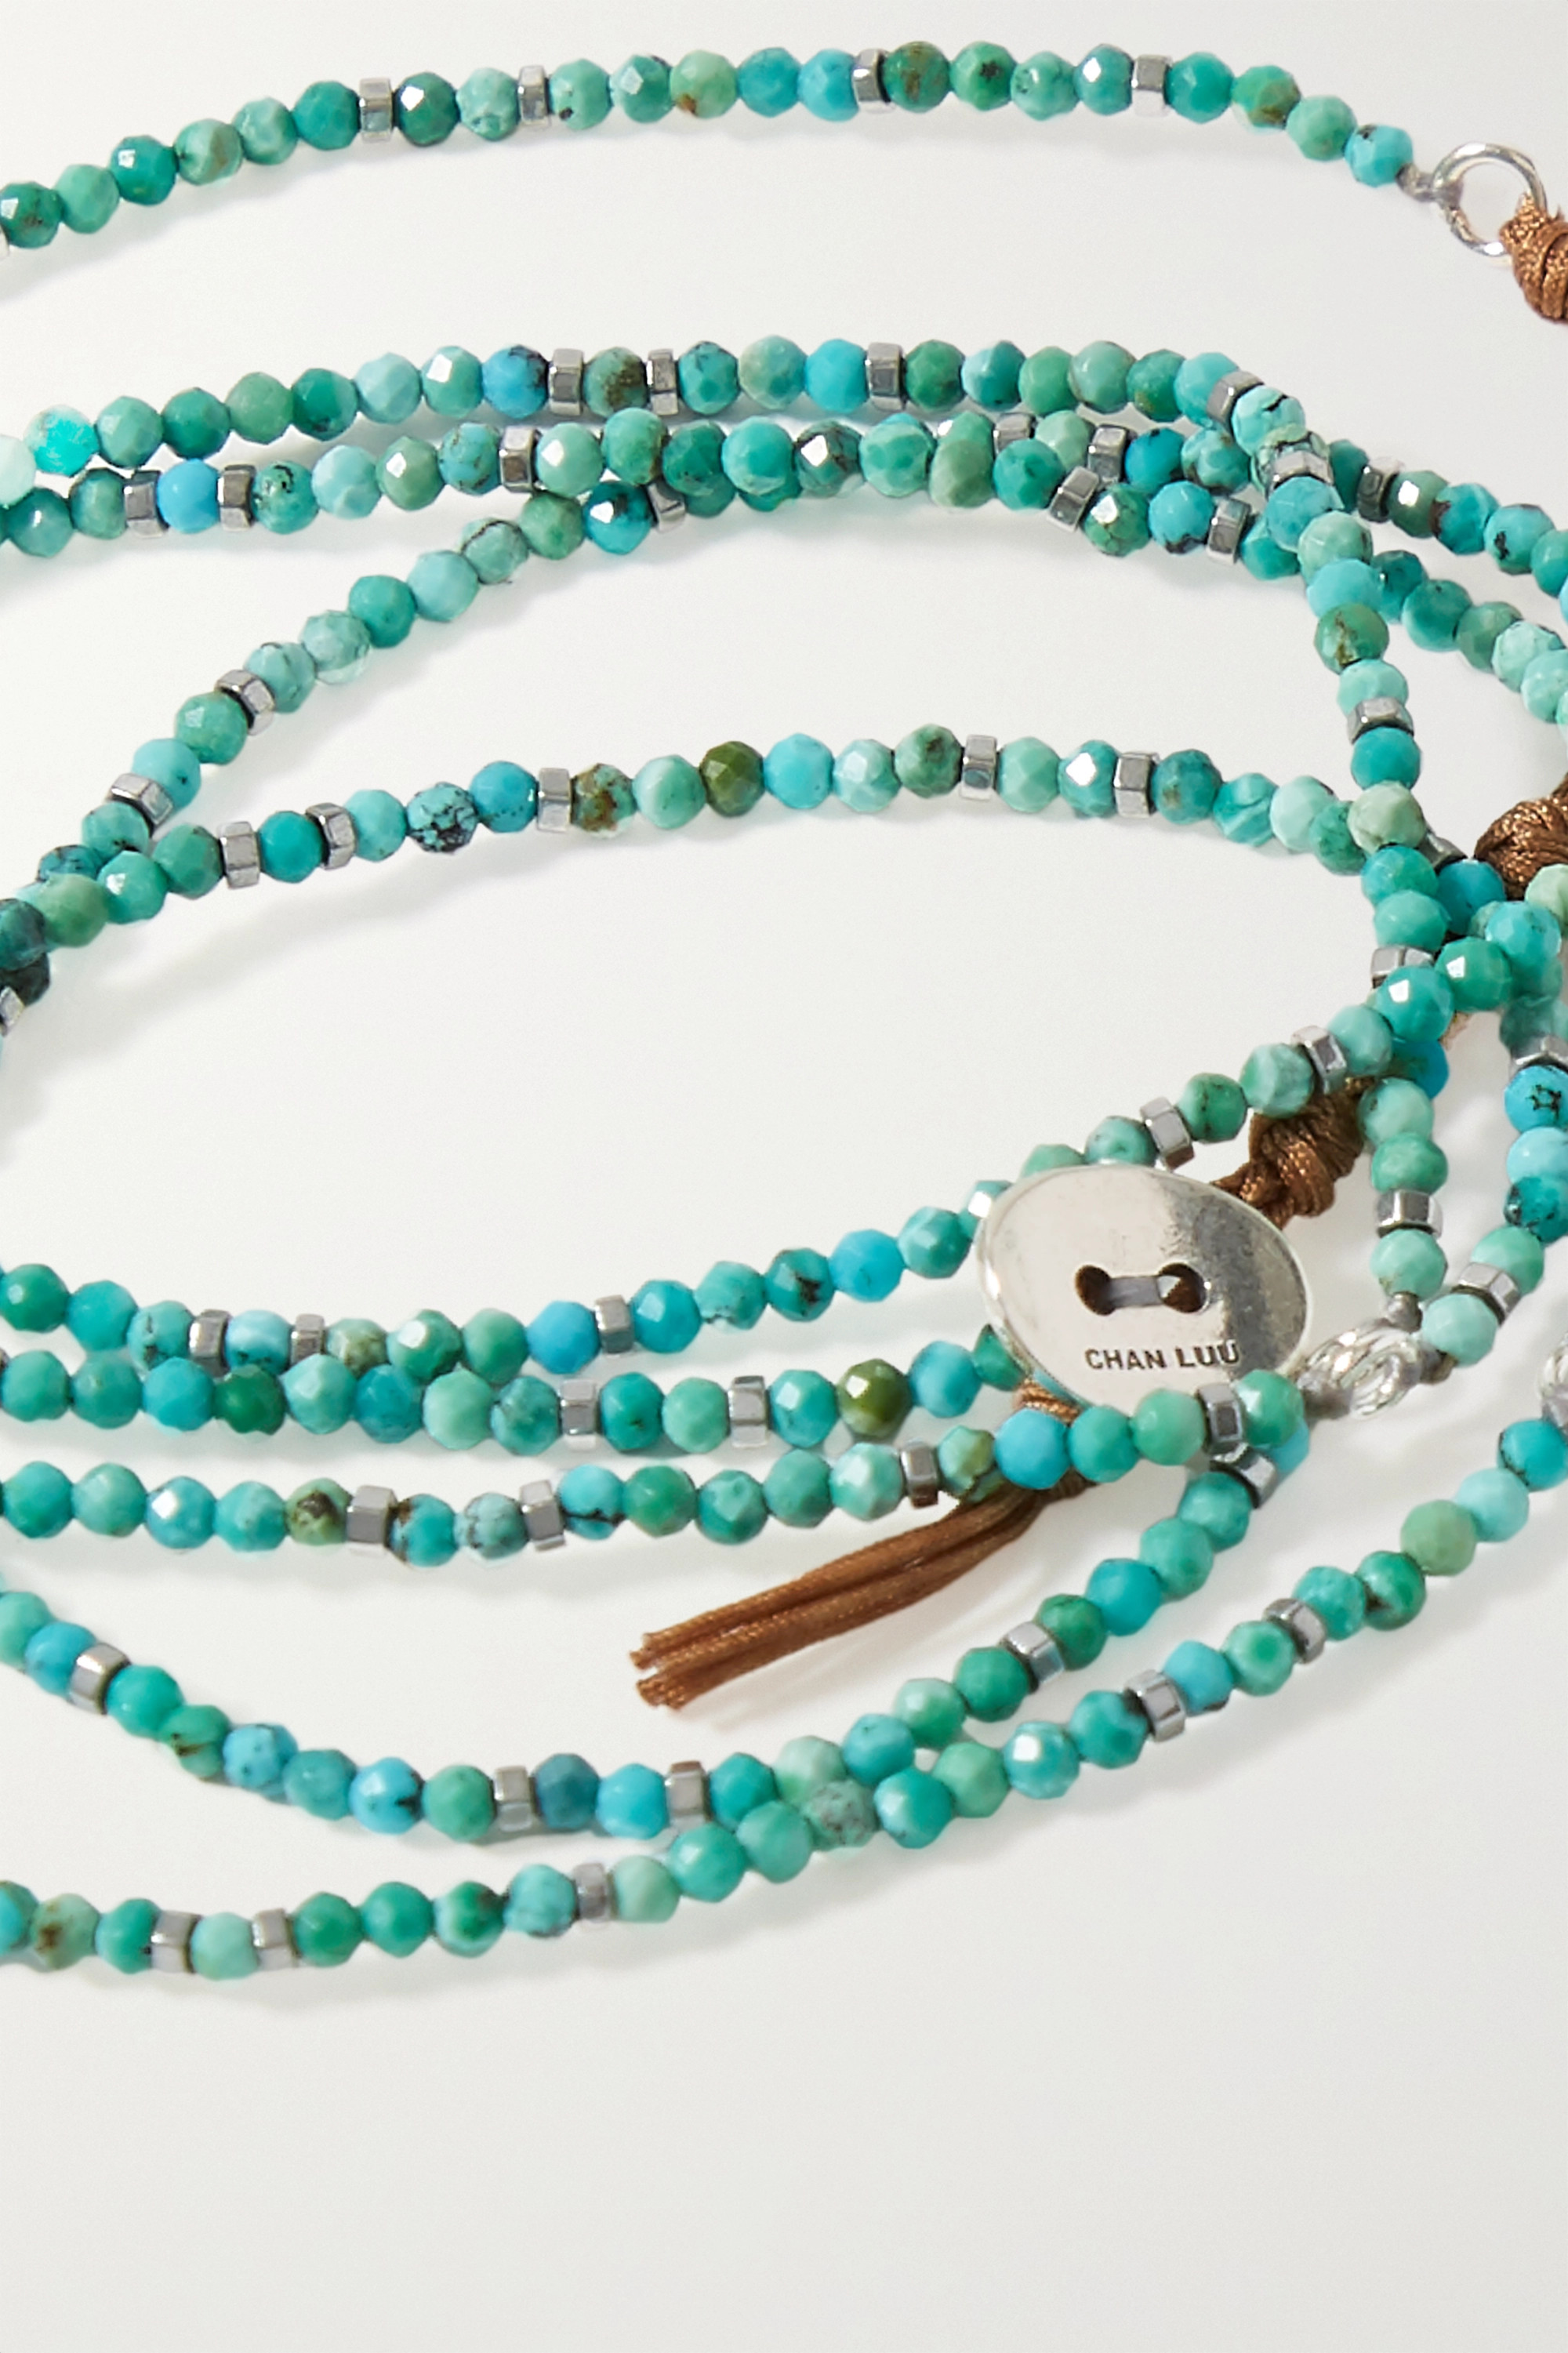 Chan Luu Turquoise and silver bracelet